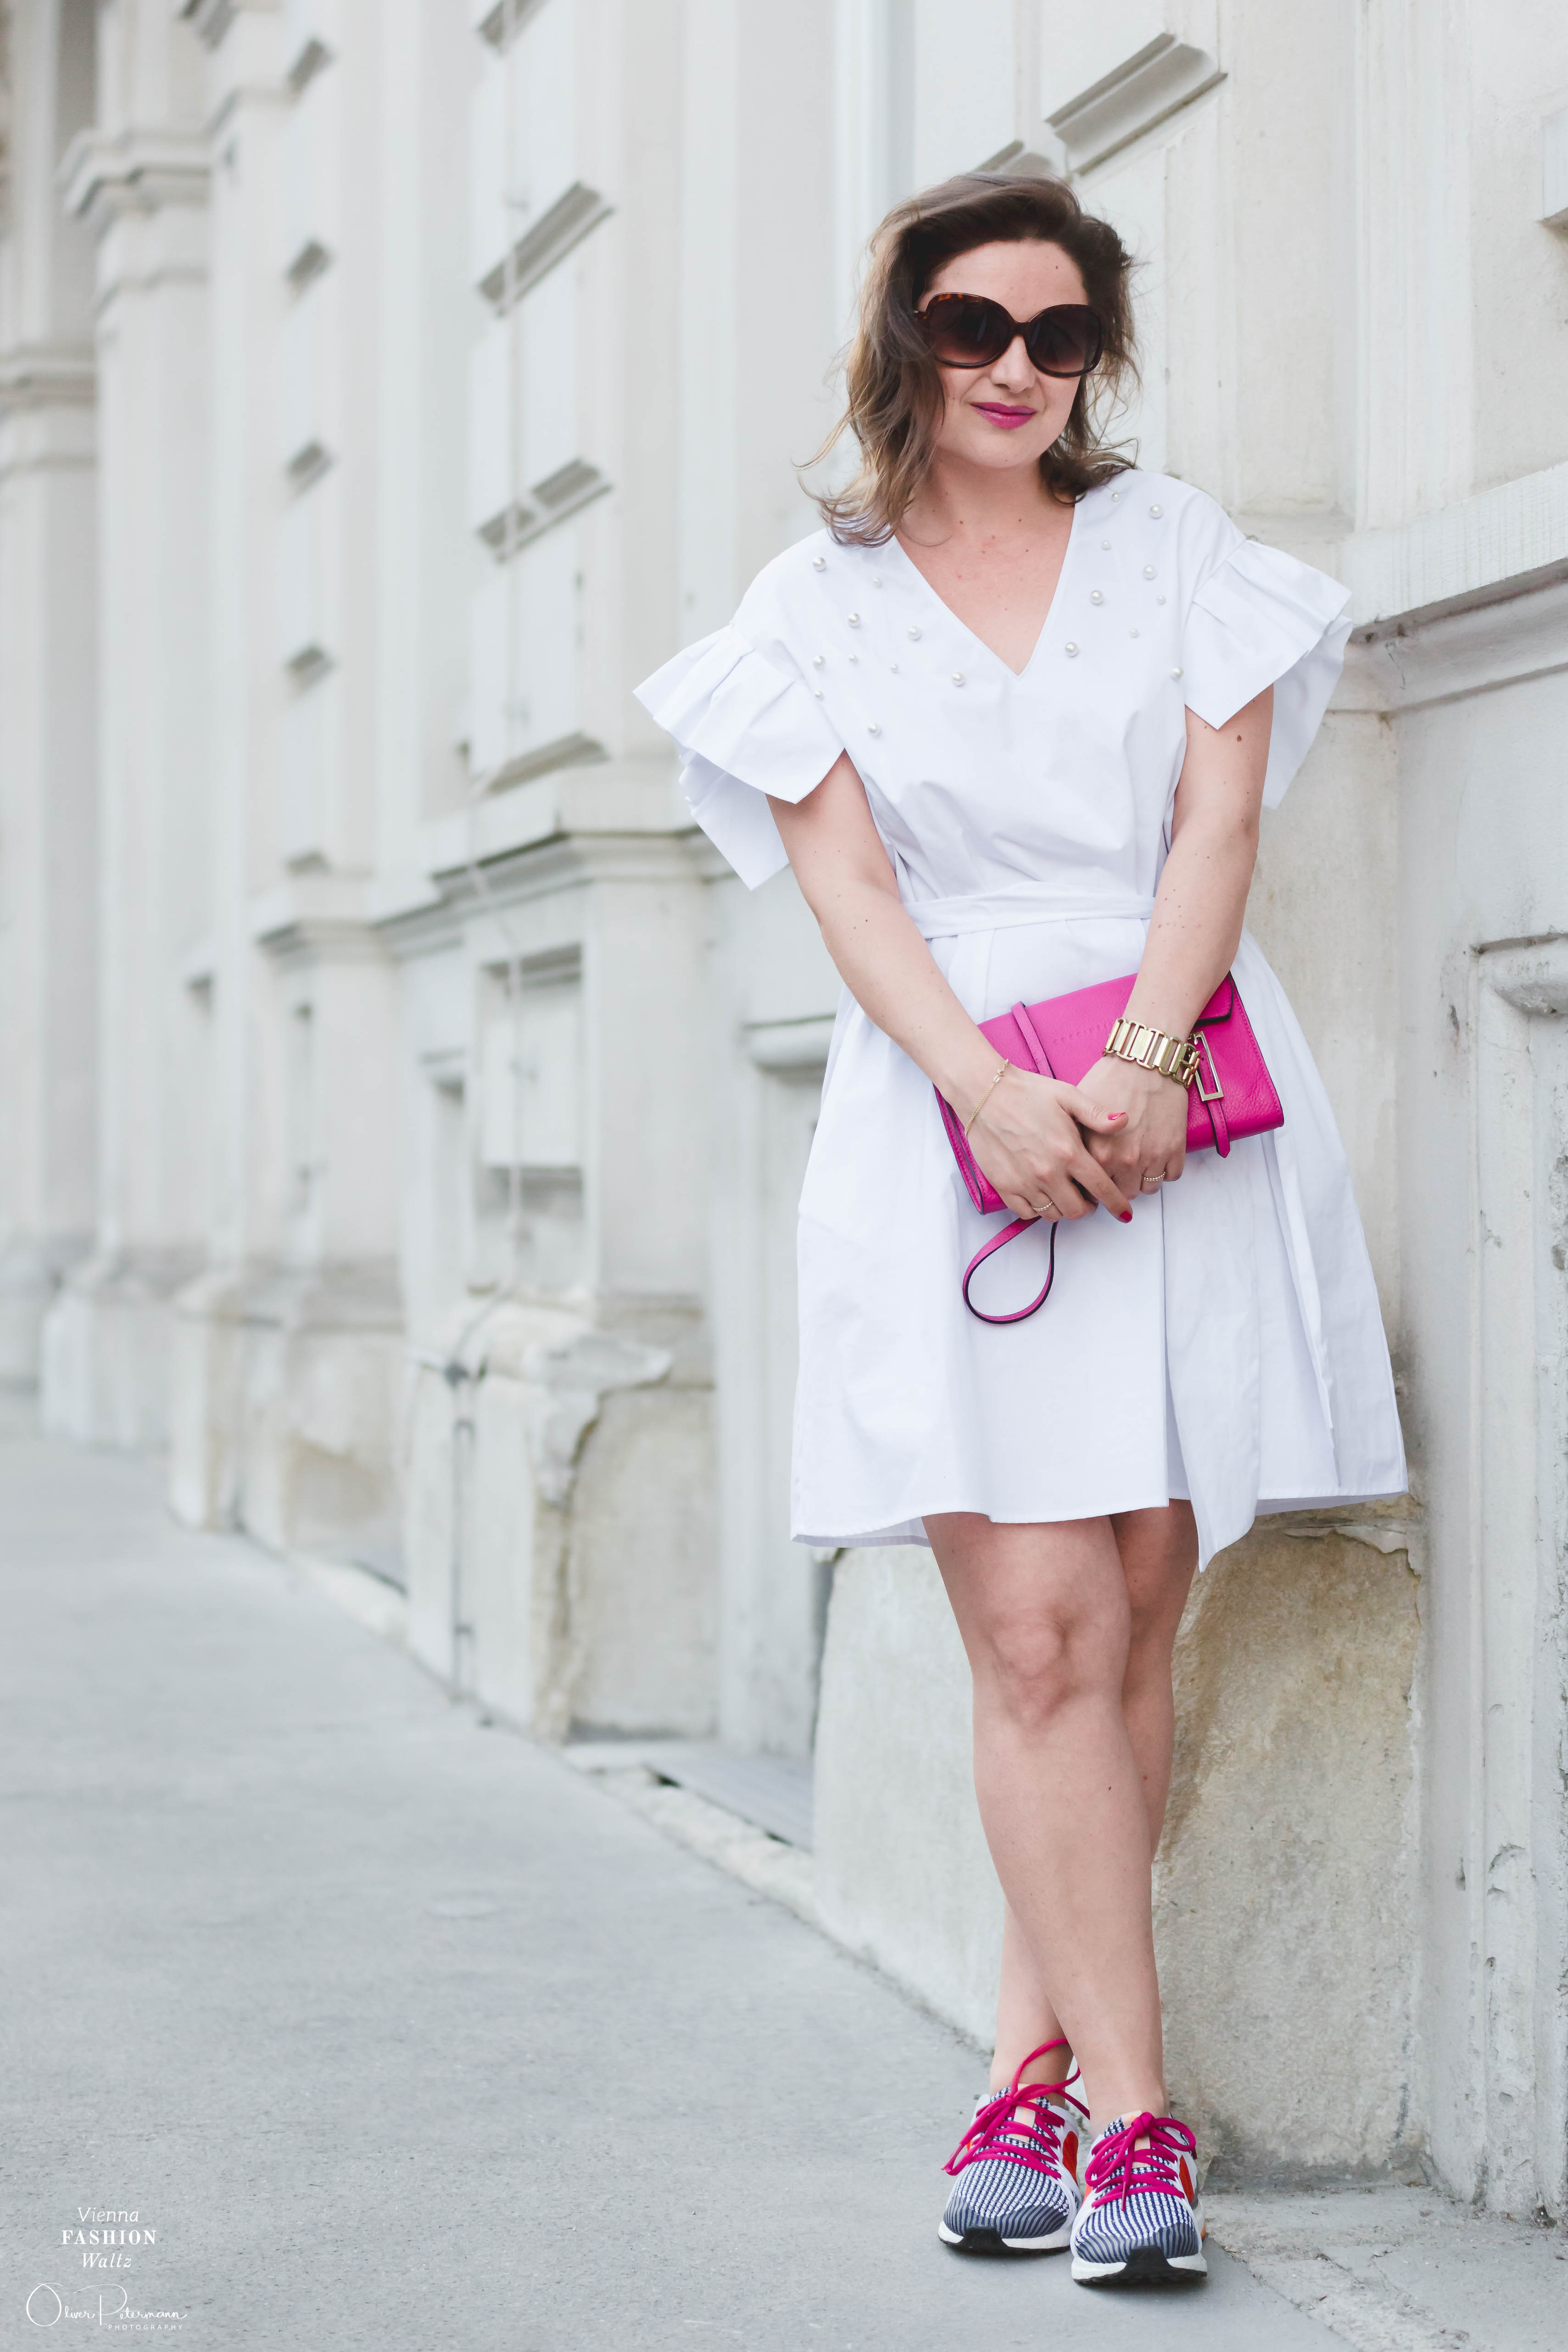 White Summer Outfit| Kleid mit Sneakers | Zara Dress with Volants & Pearls, Pink Coccinelle Bag, Adidas Ultra Boost by Stella McCartney | Fashion Blog Post, Streetstyle Vienna